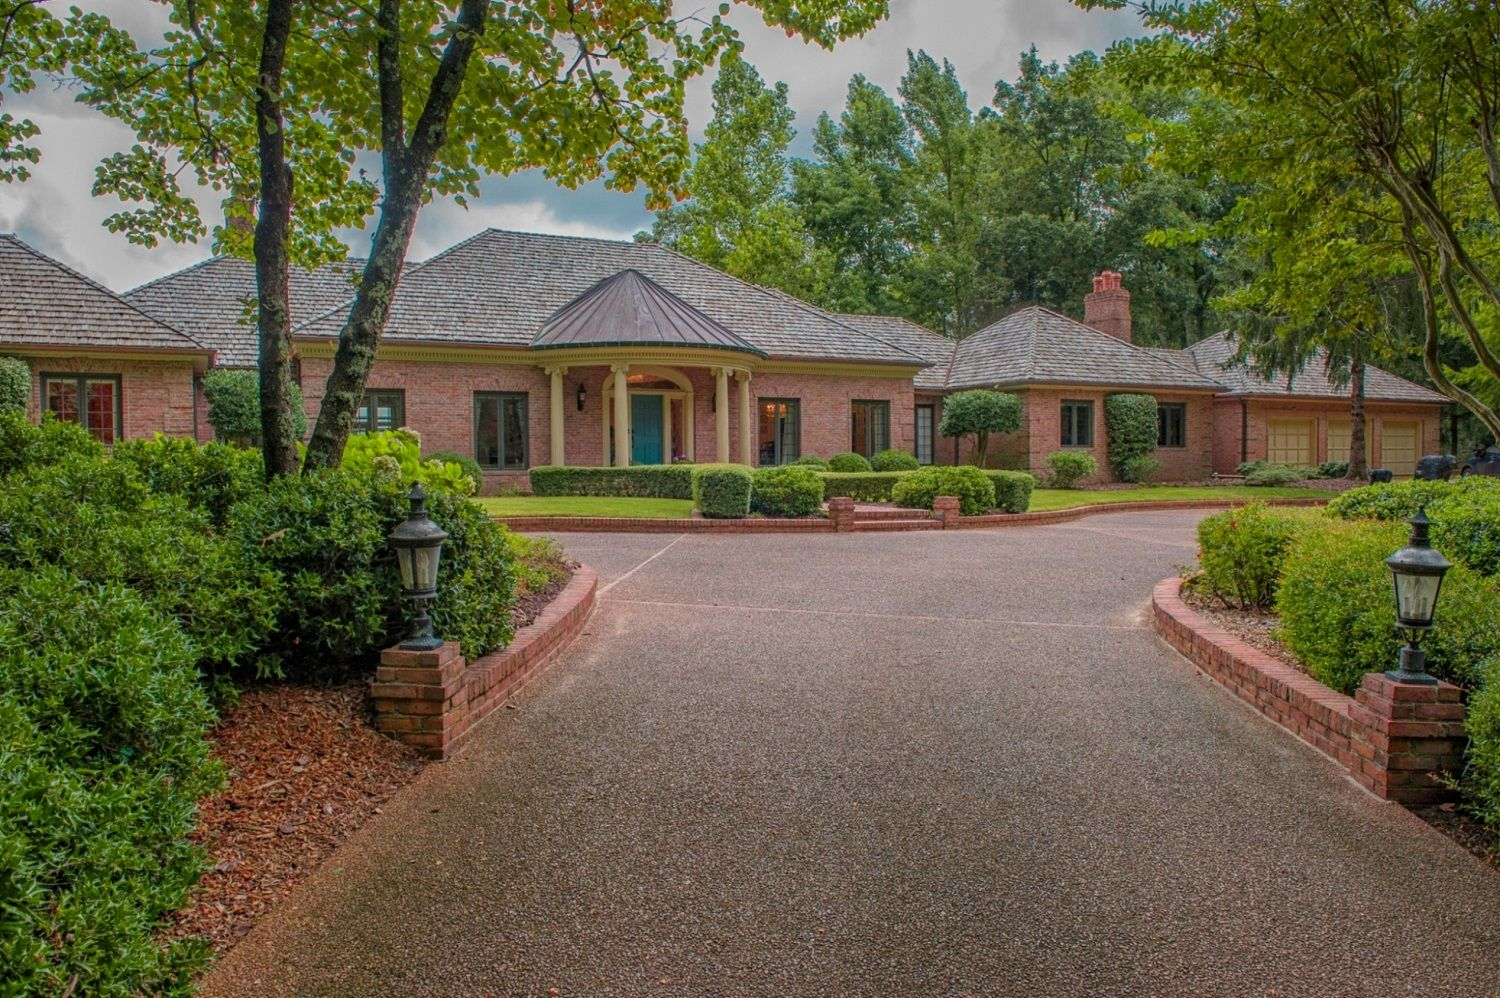 Stunning 3 BR, 4.5 BA, 6,200+/- sq. ft.  home with foyer, LR, DR, family room, sun room, fabulous outdoor areas, reflecting pool & breathtaking views on 3+/- acres.